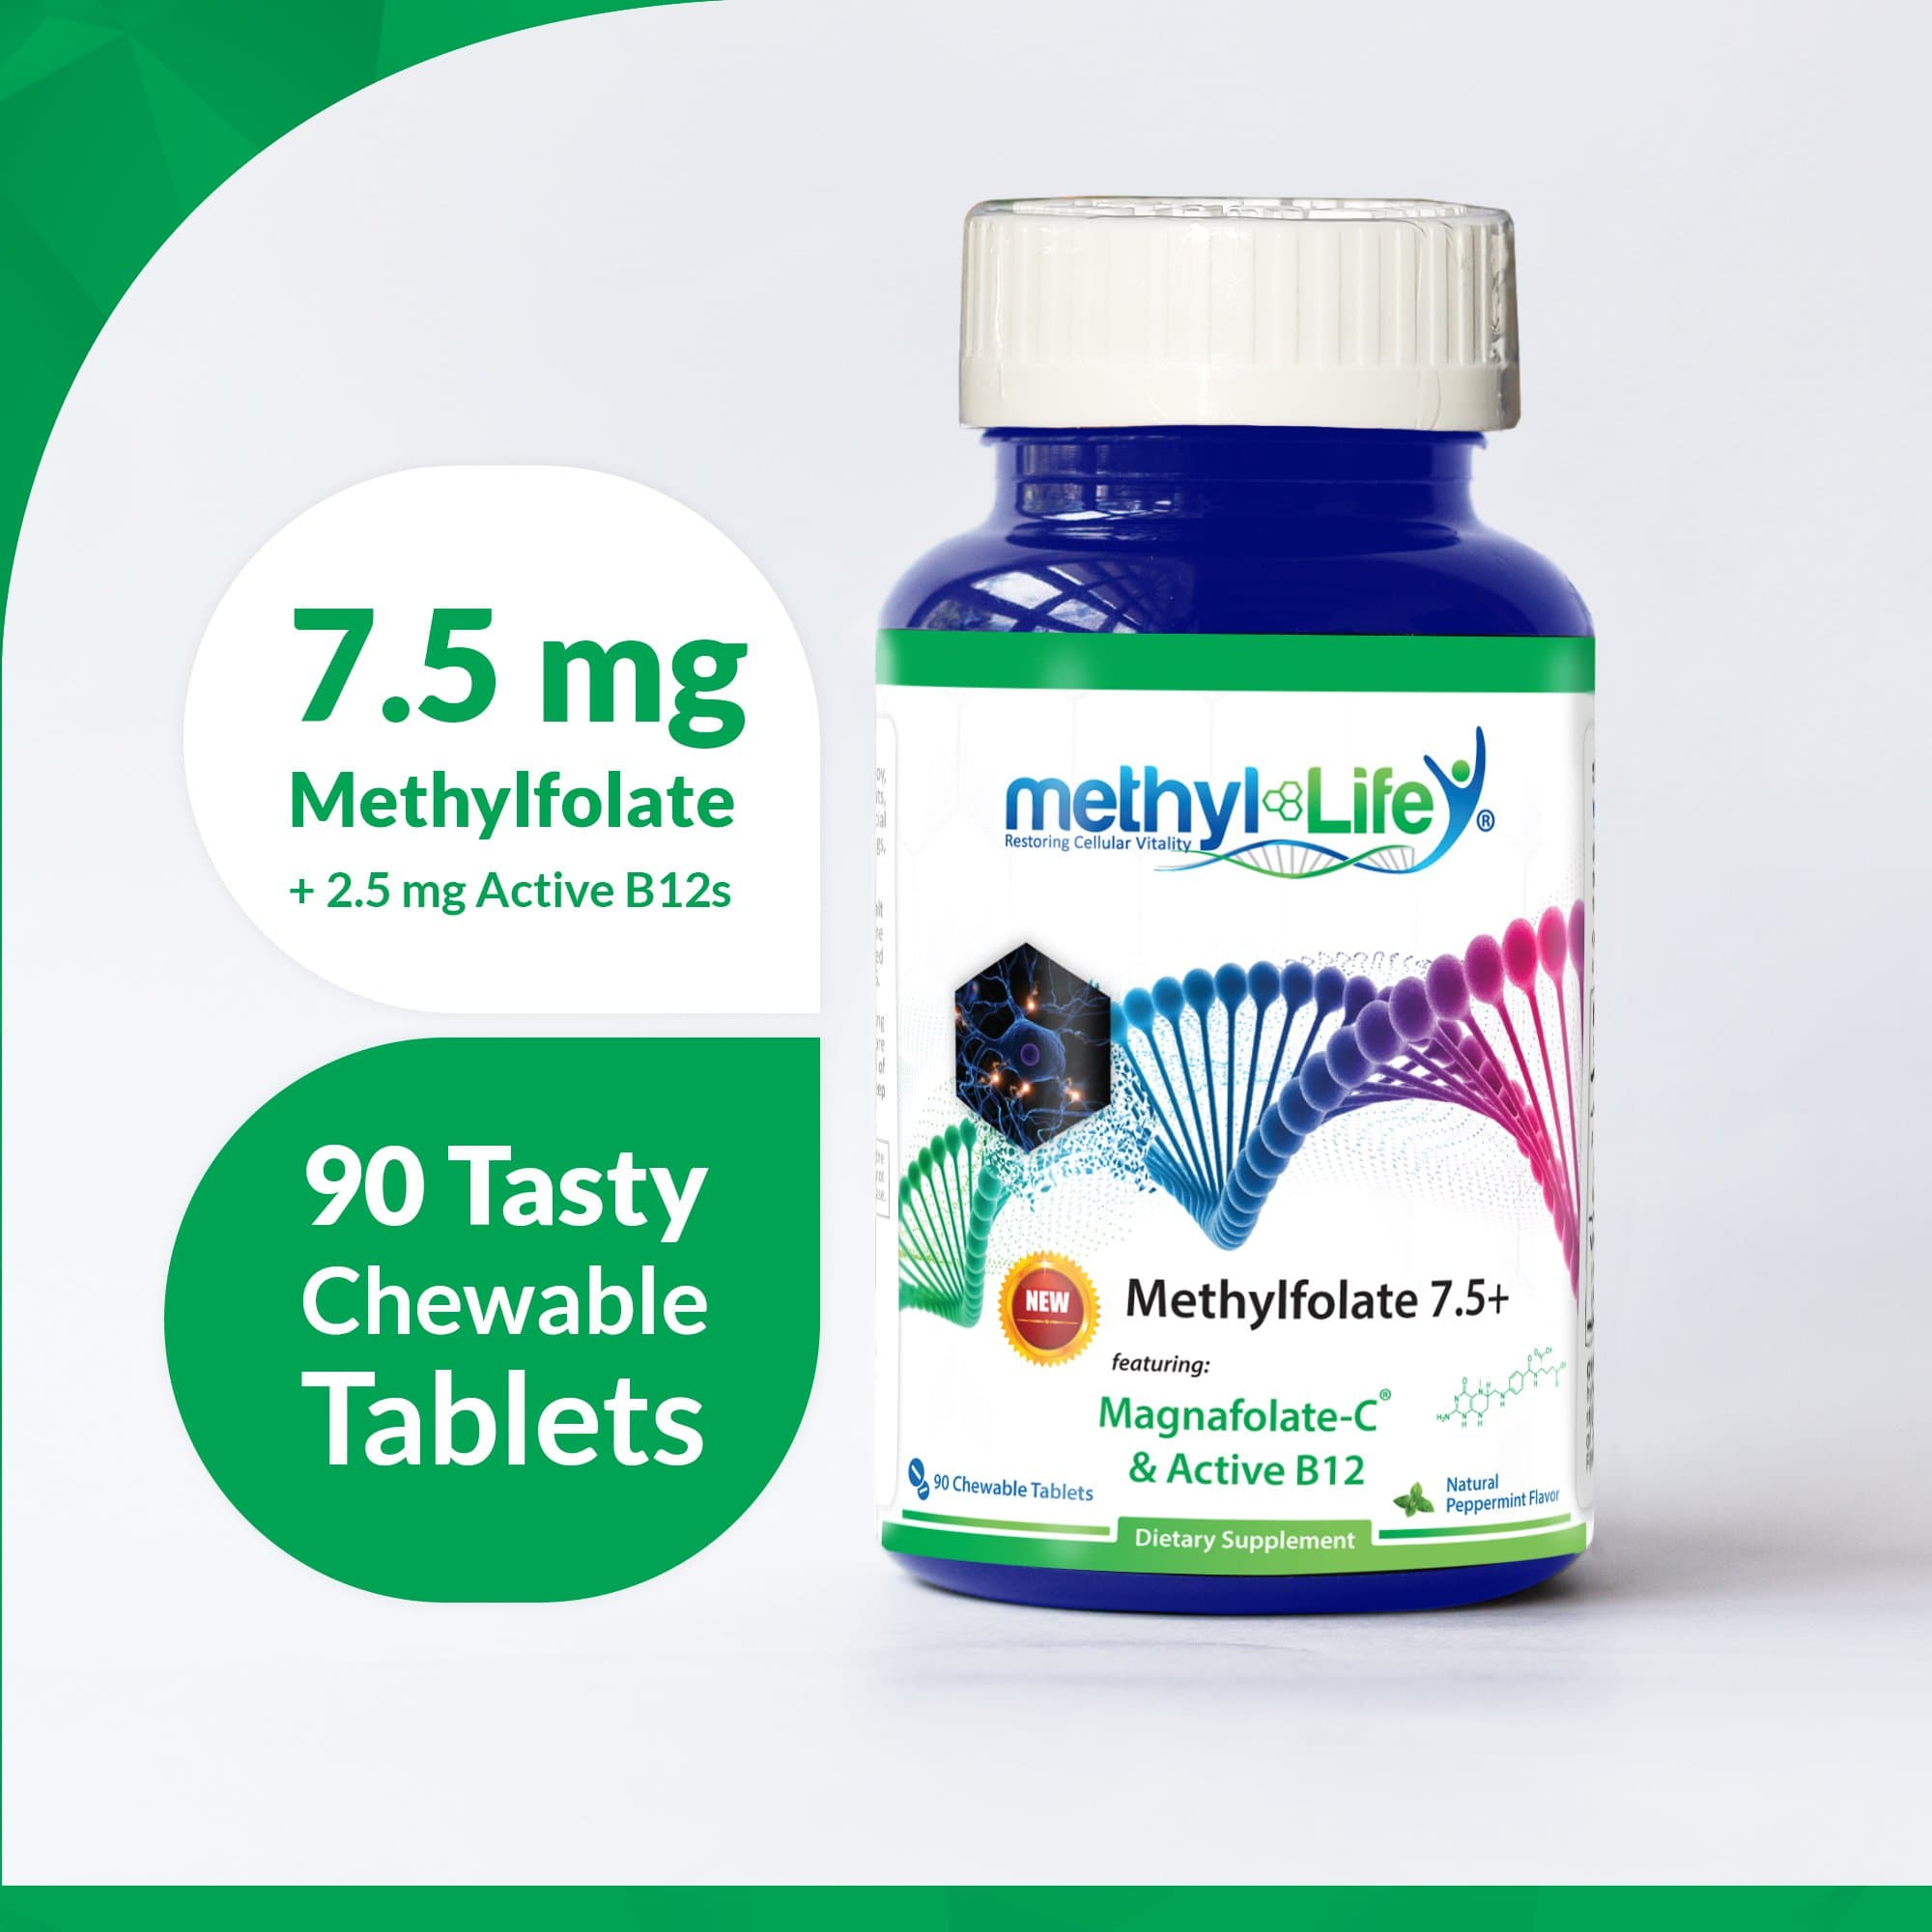 methylfolate 7.5 mg